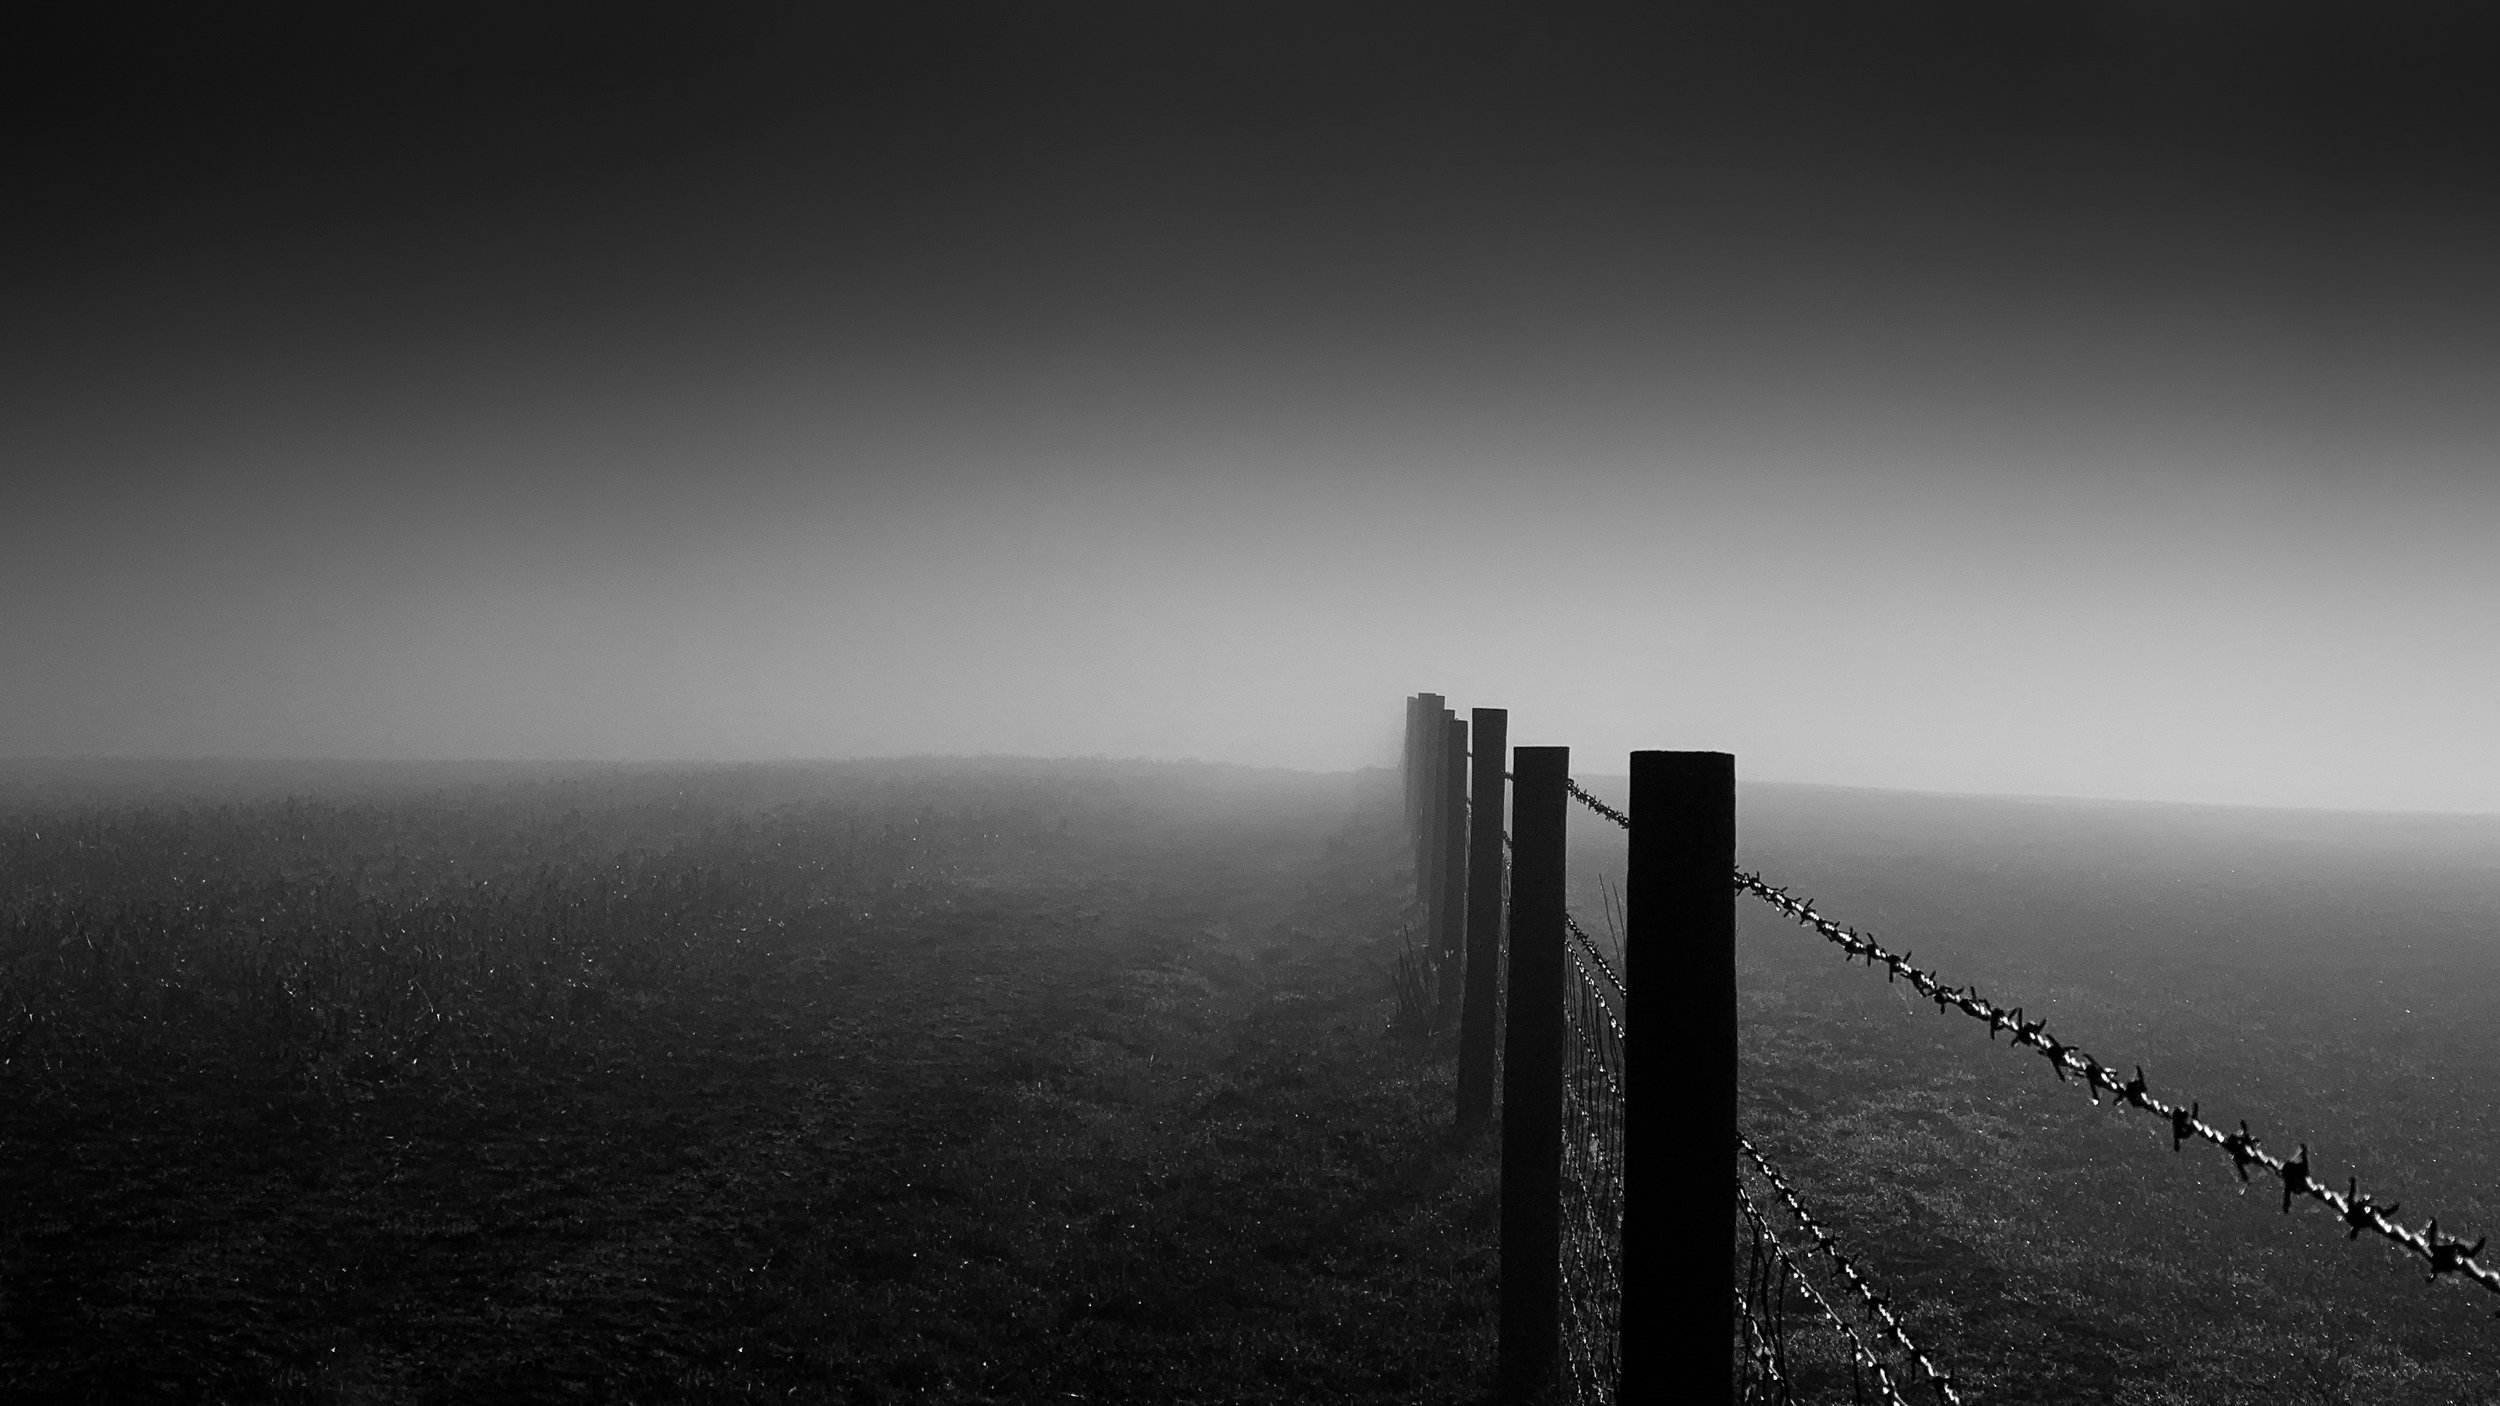 Fence into the mist